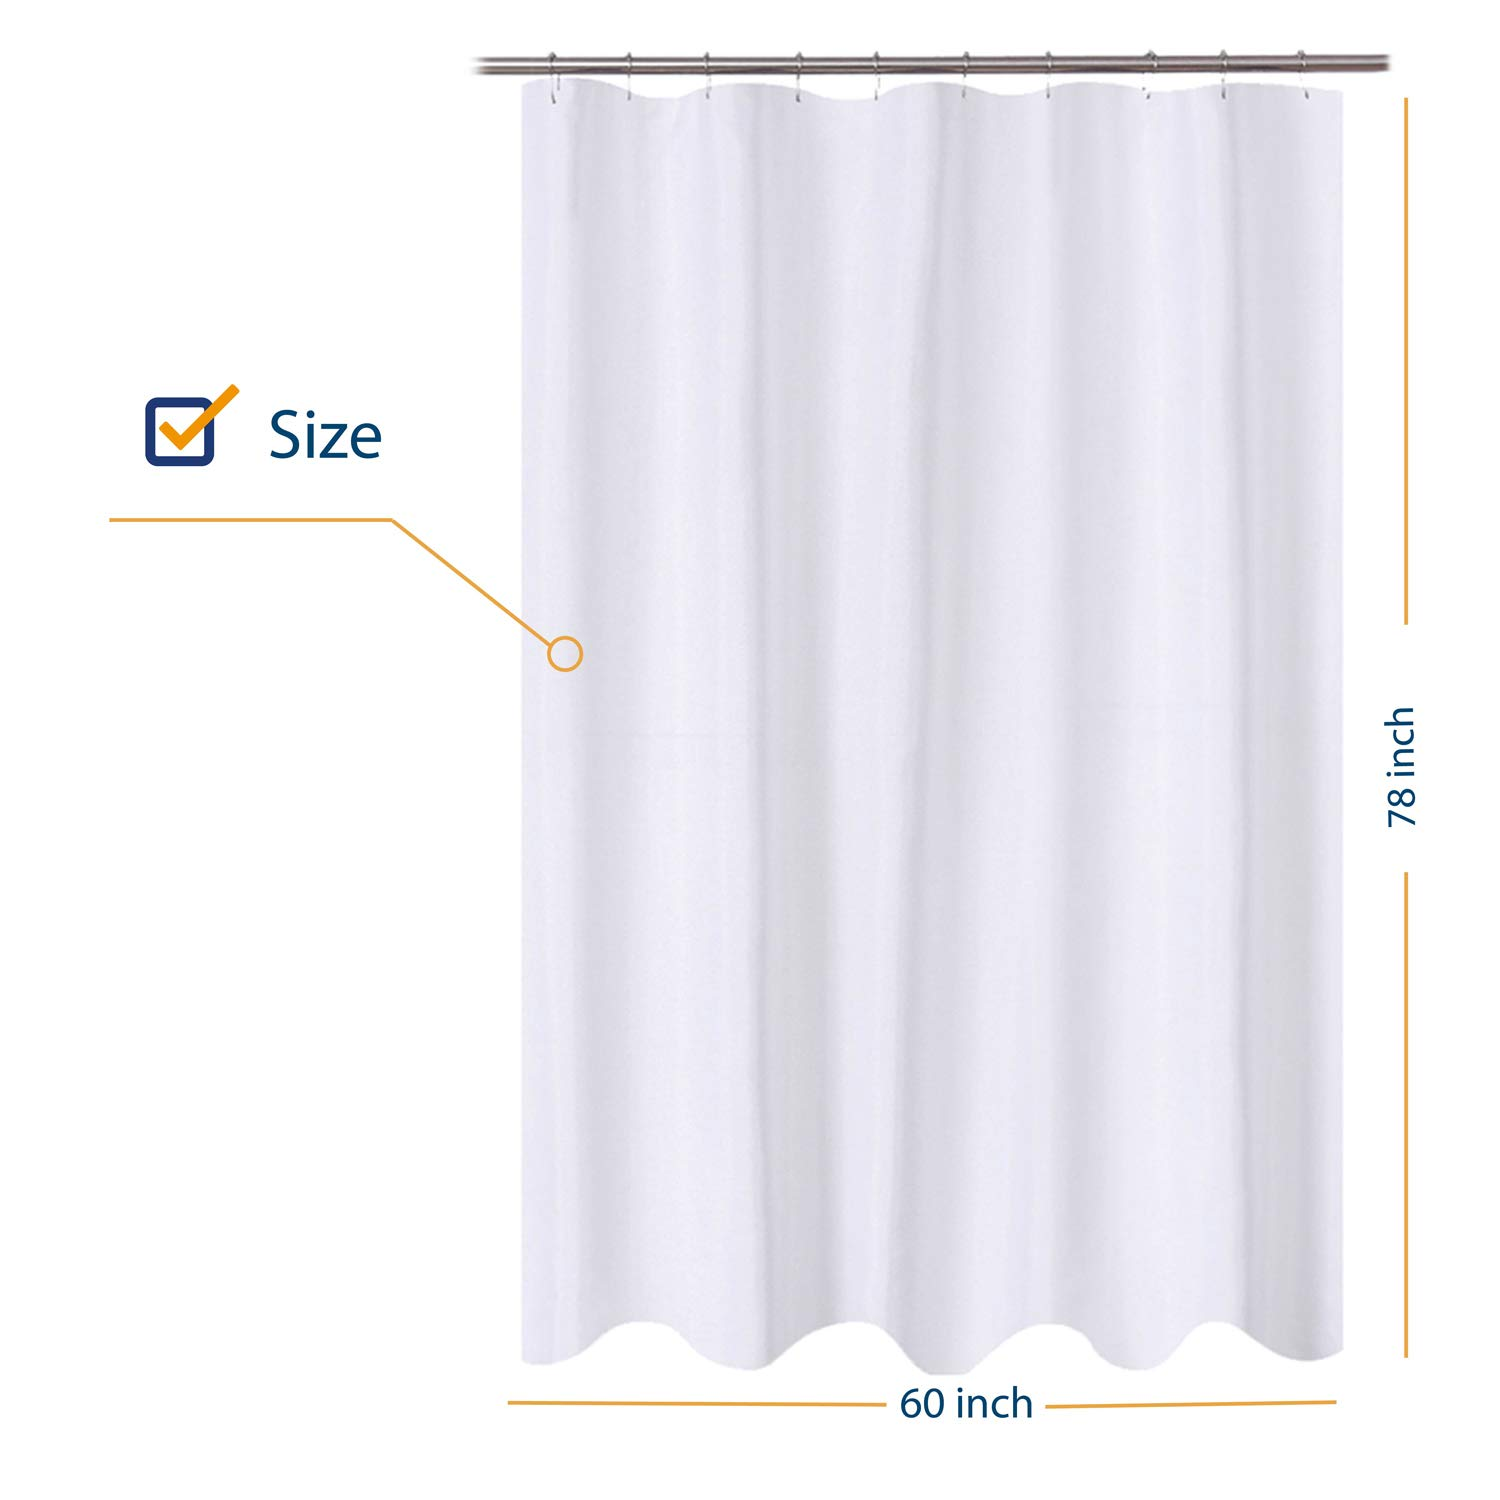 n y home fabric shower curtain liner 60 x 78 inch long stall size hotel quality washable water repellent white bathroom curtains with grommets